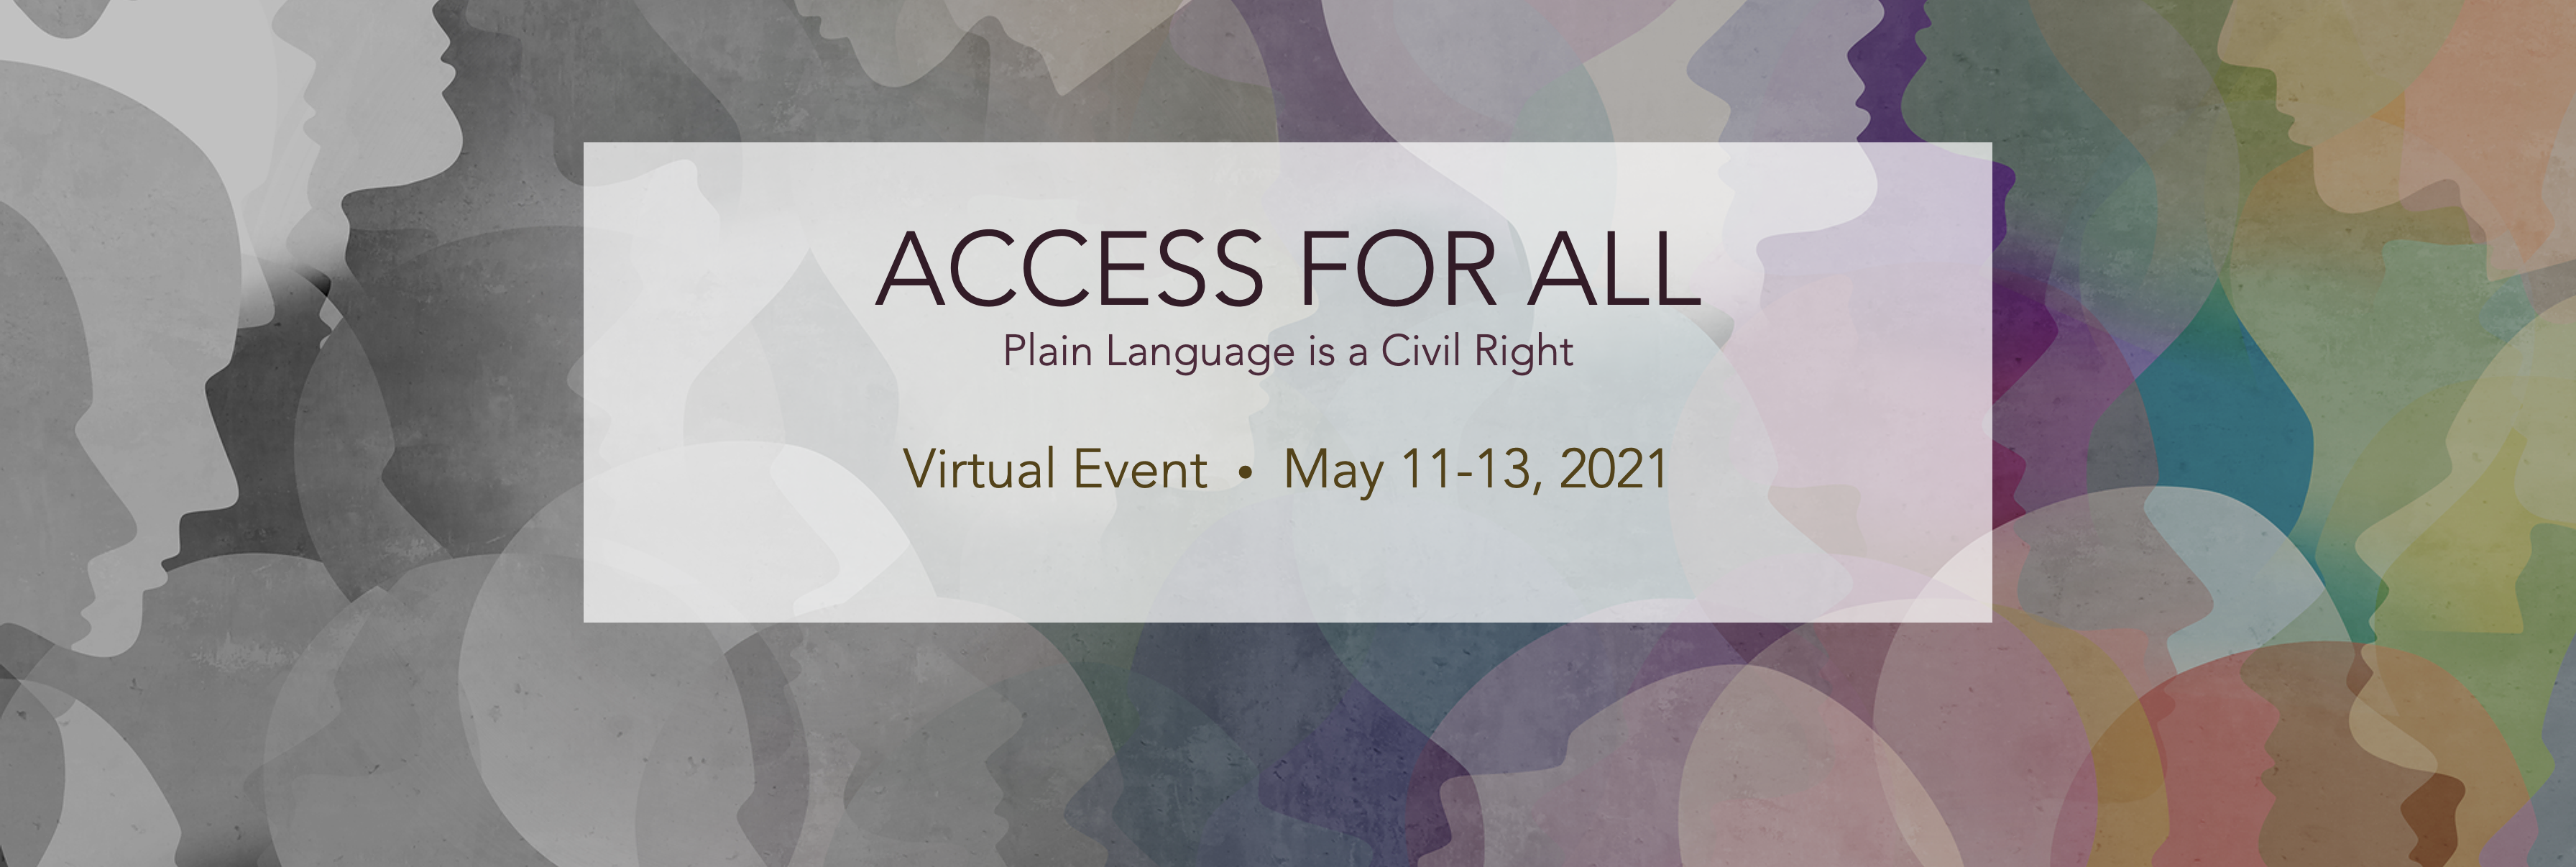 Access for All Conference May 11th-13th